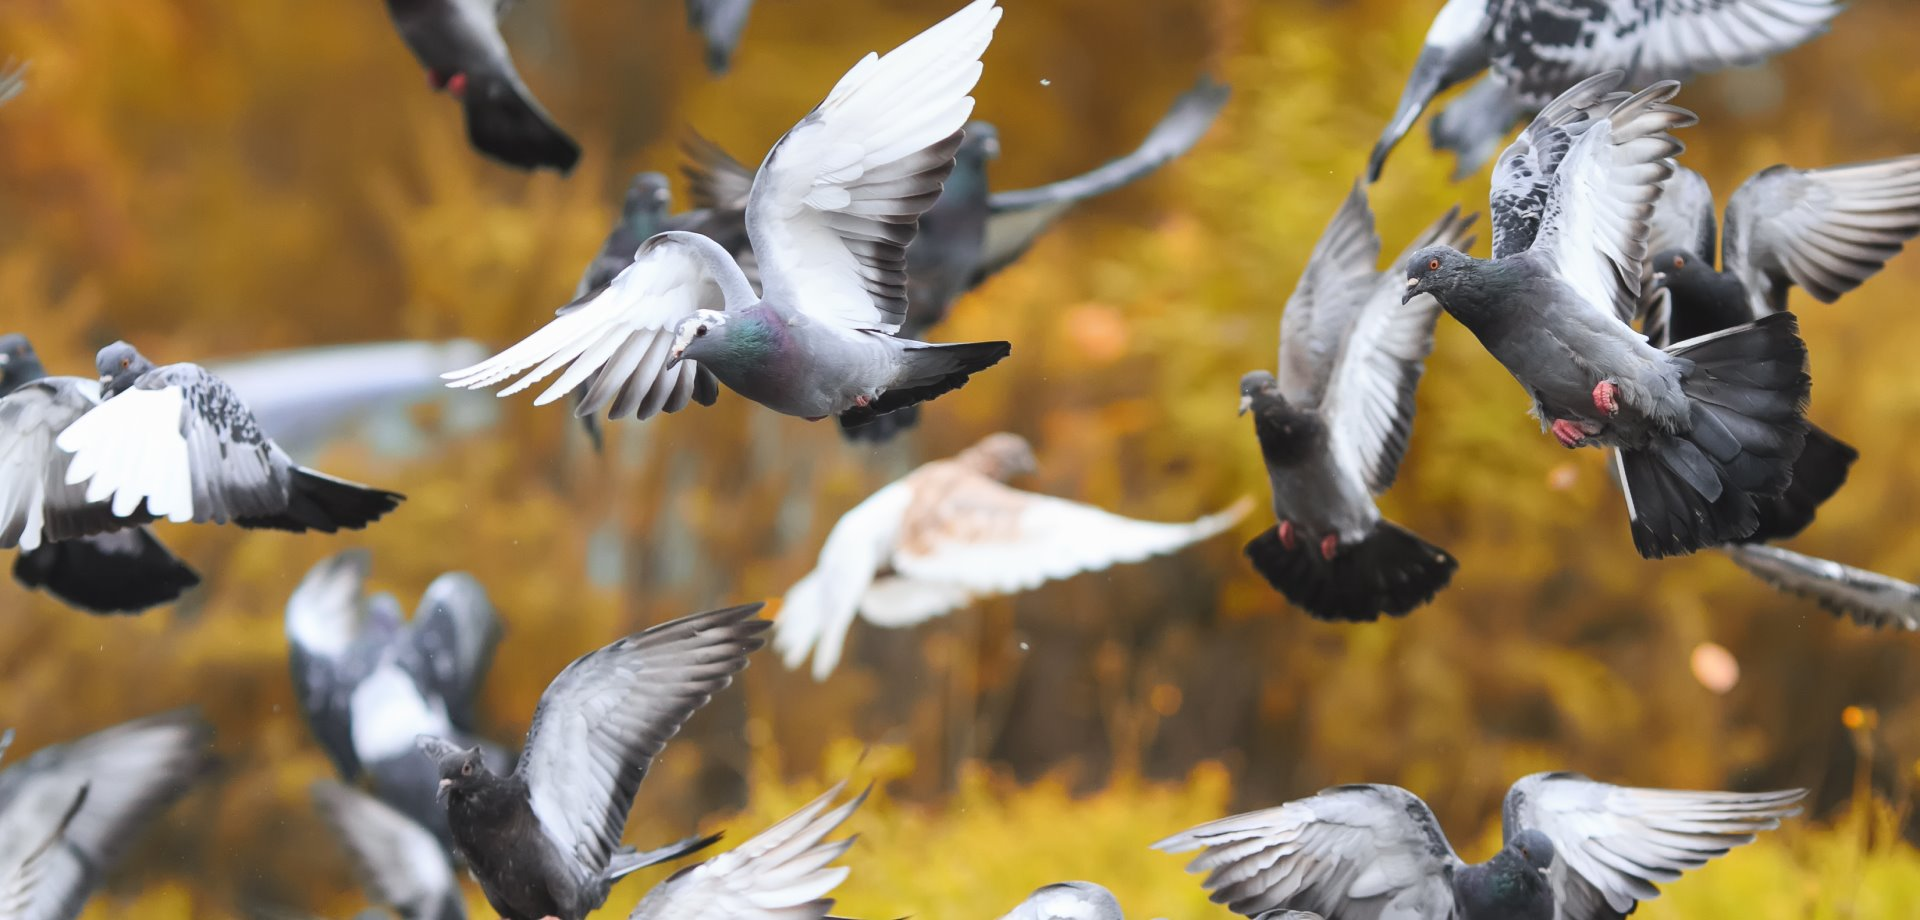 Where are they? - Canadian Pigeon Fanciers Association